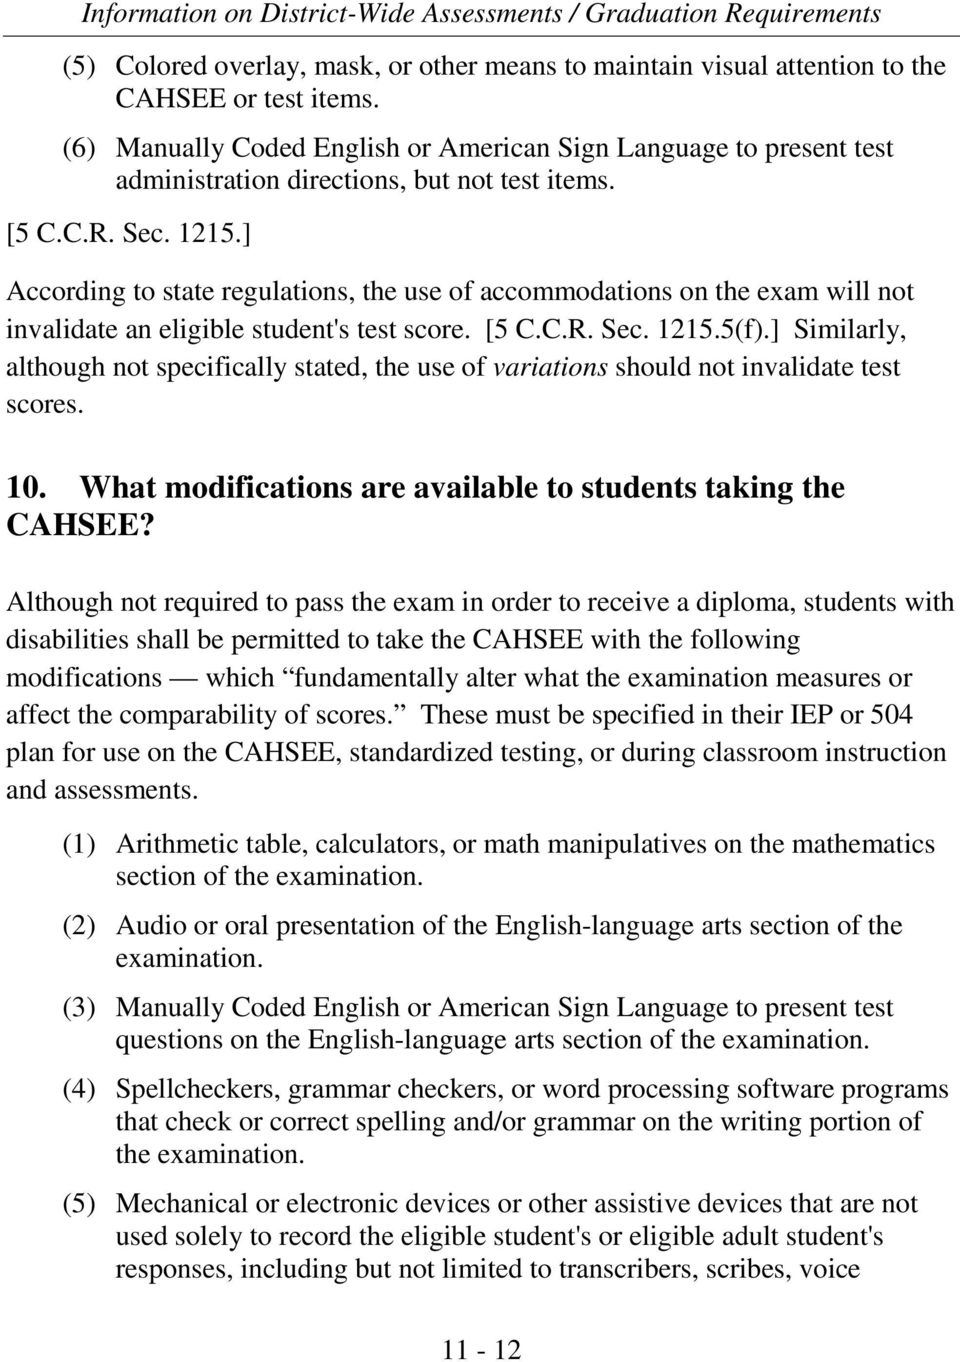 ] According to state regulations, the use of accommodations on the exam will not invalidate an eligible student's test score. [5 C.C.R. Sec. 1215.5(f).